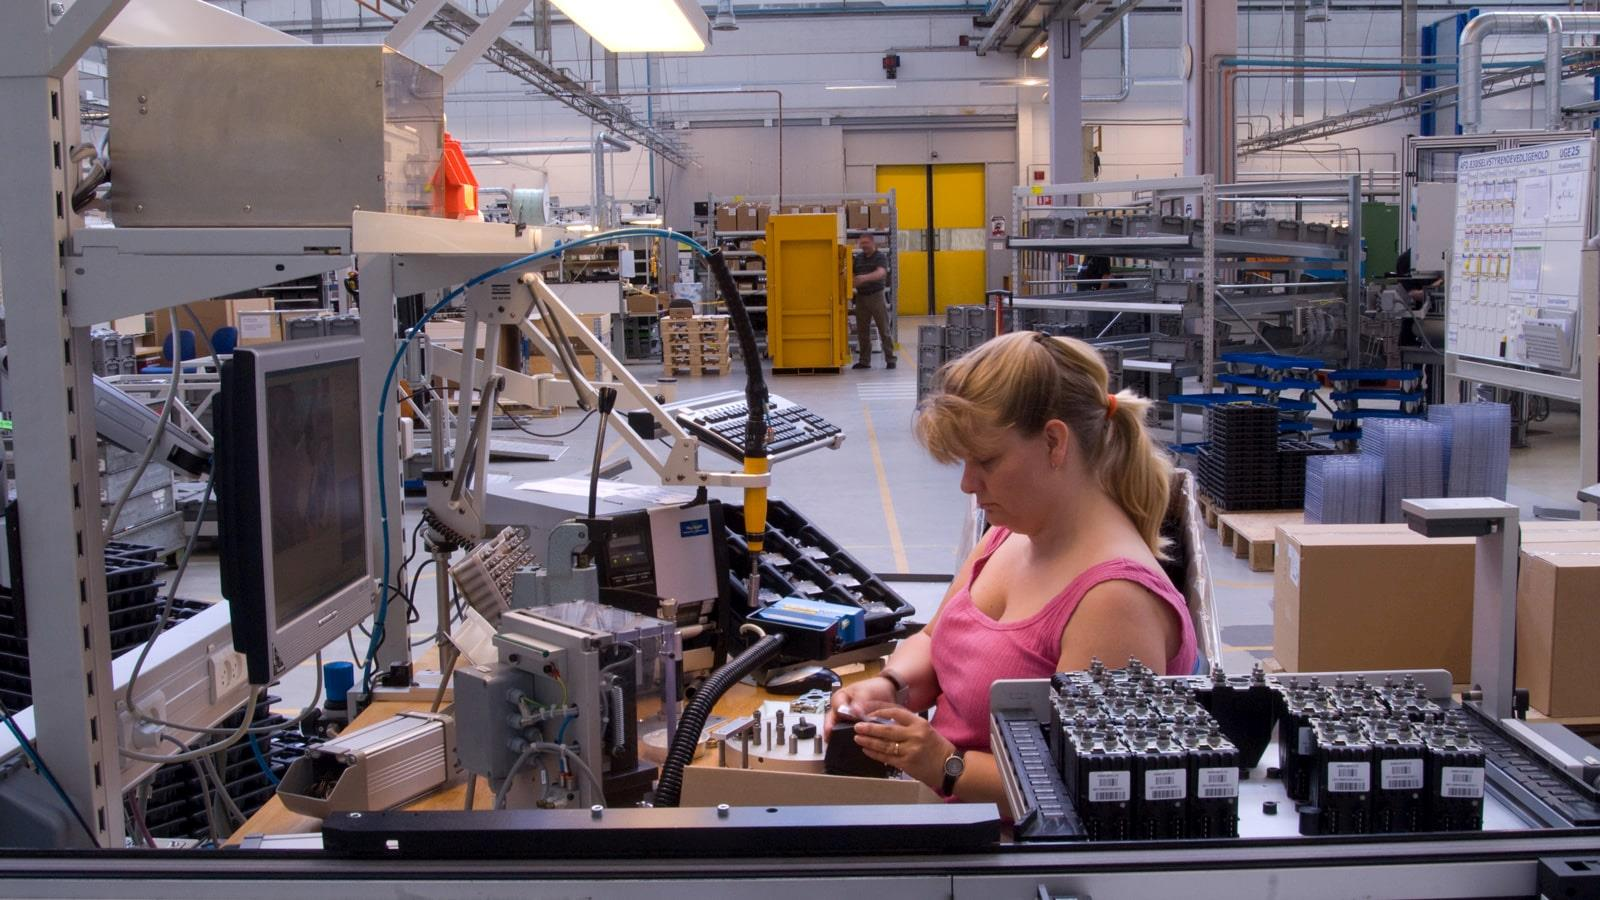 Blond woman in pink blouse working at assembly line at Sauer-Danfoss